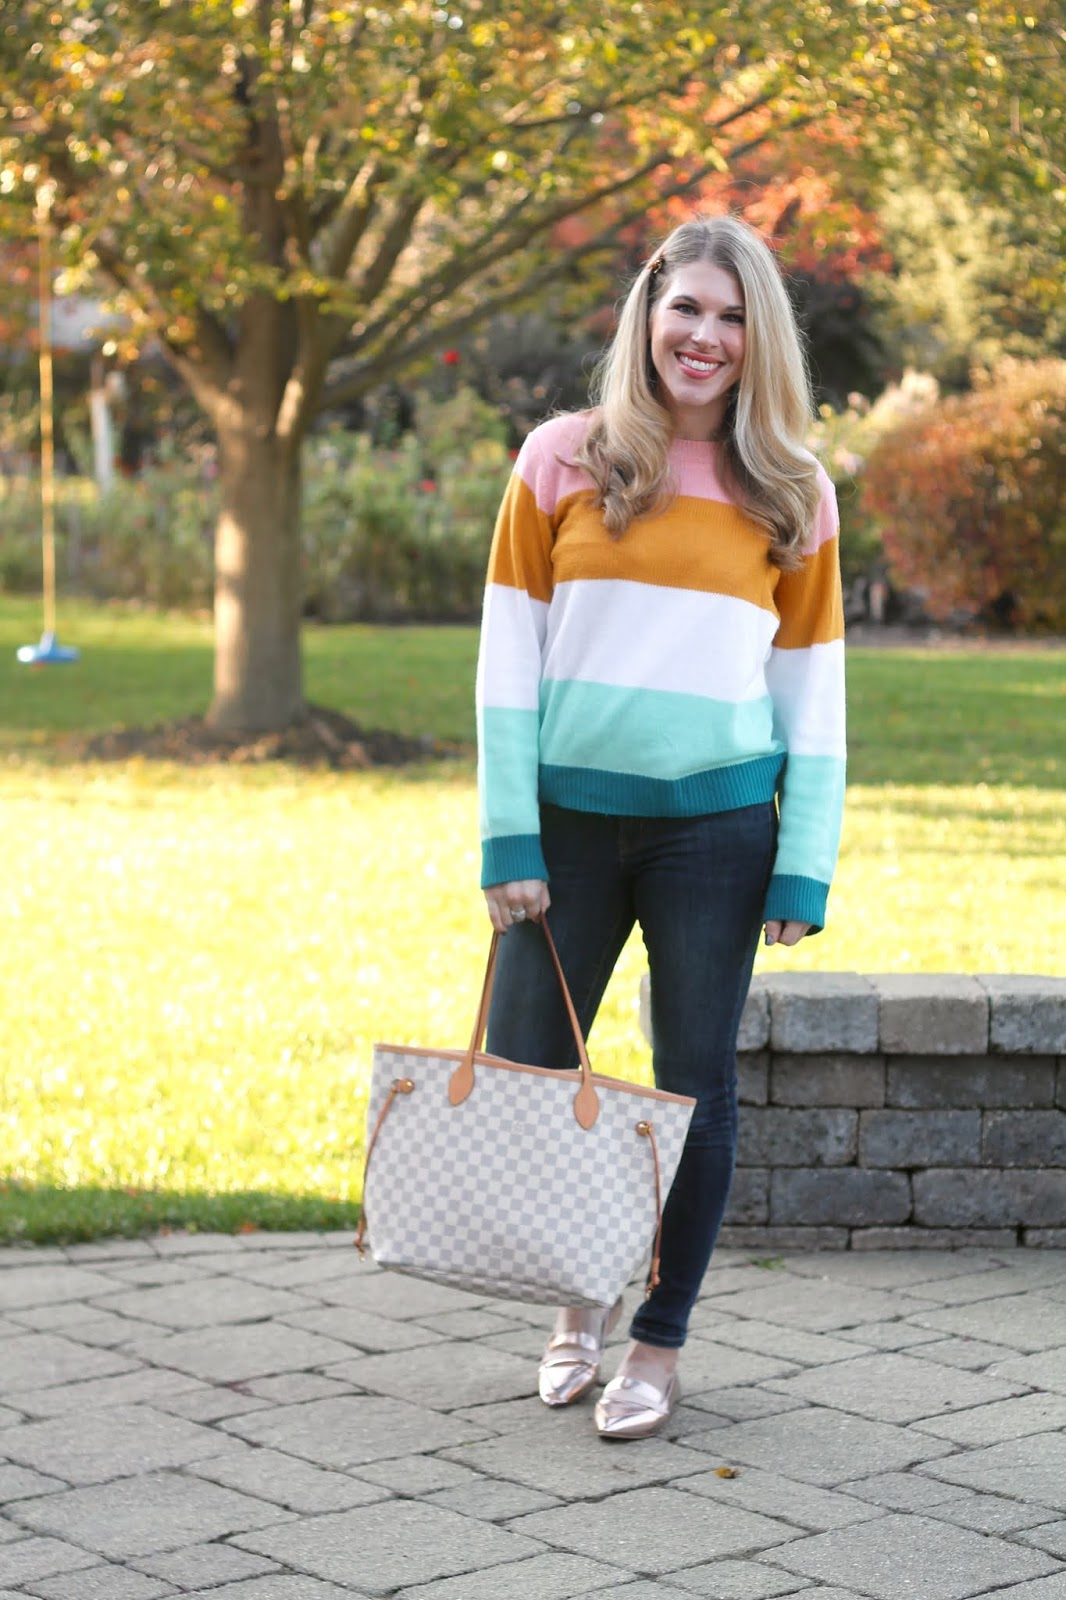 aurate review, old navy rockstar jeans, color block sweater, rose gold loafers, LV azure neverfull